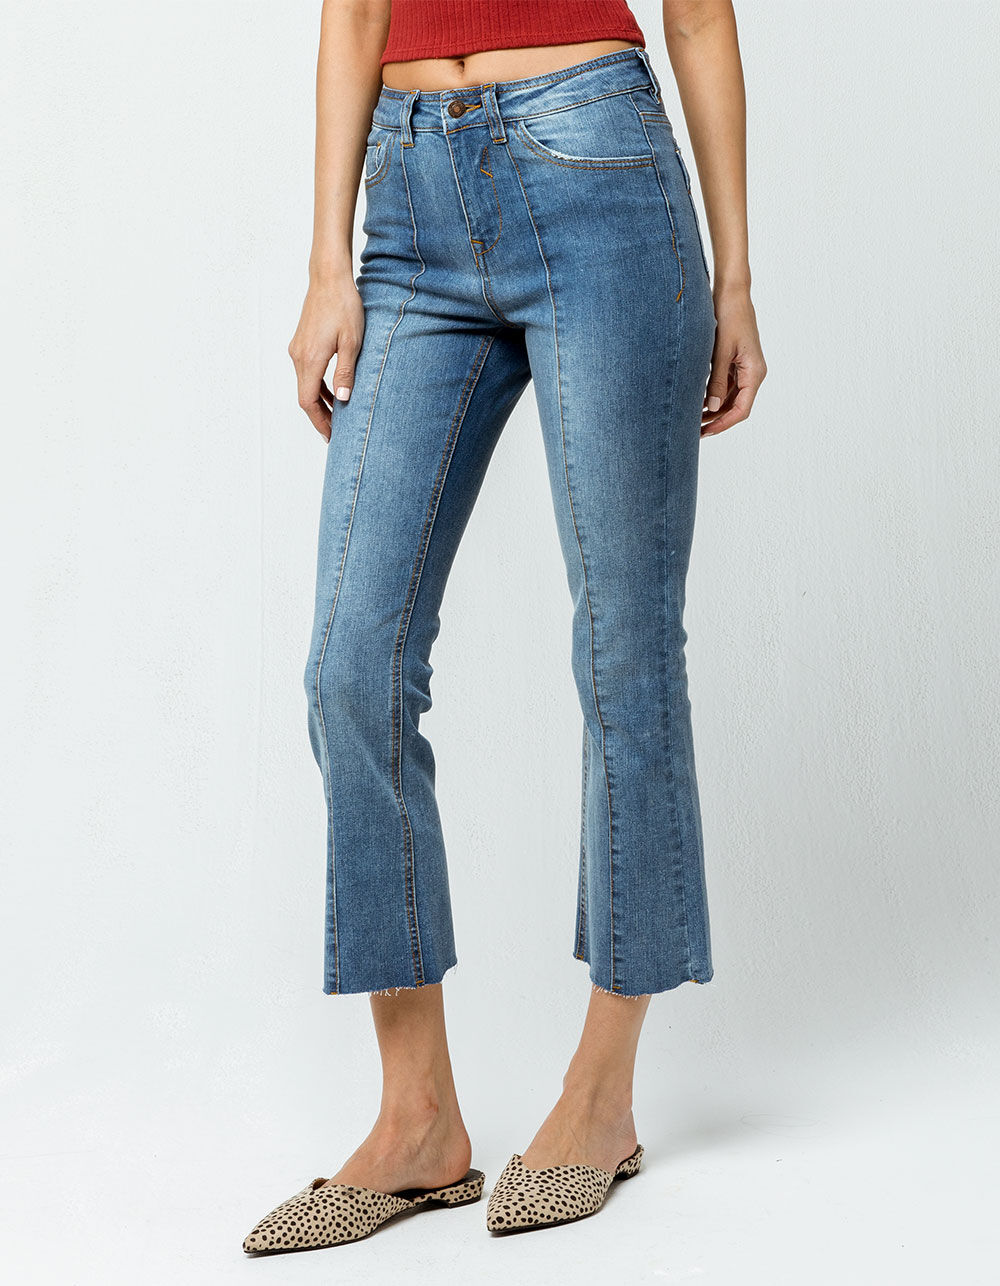 SKY AND SPARROW Seamed Crop Flare Jeans